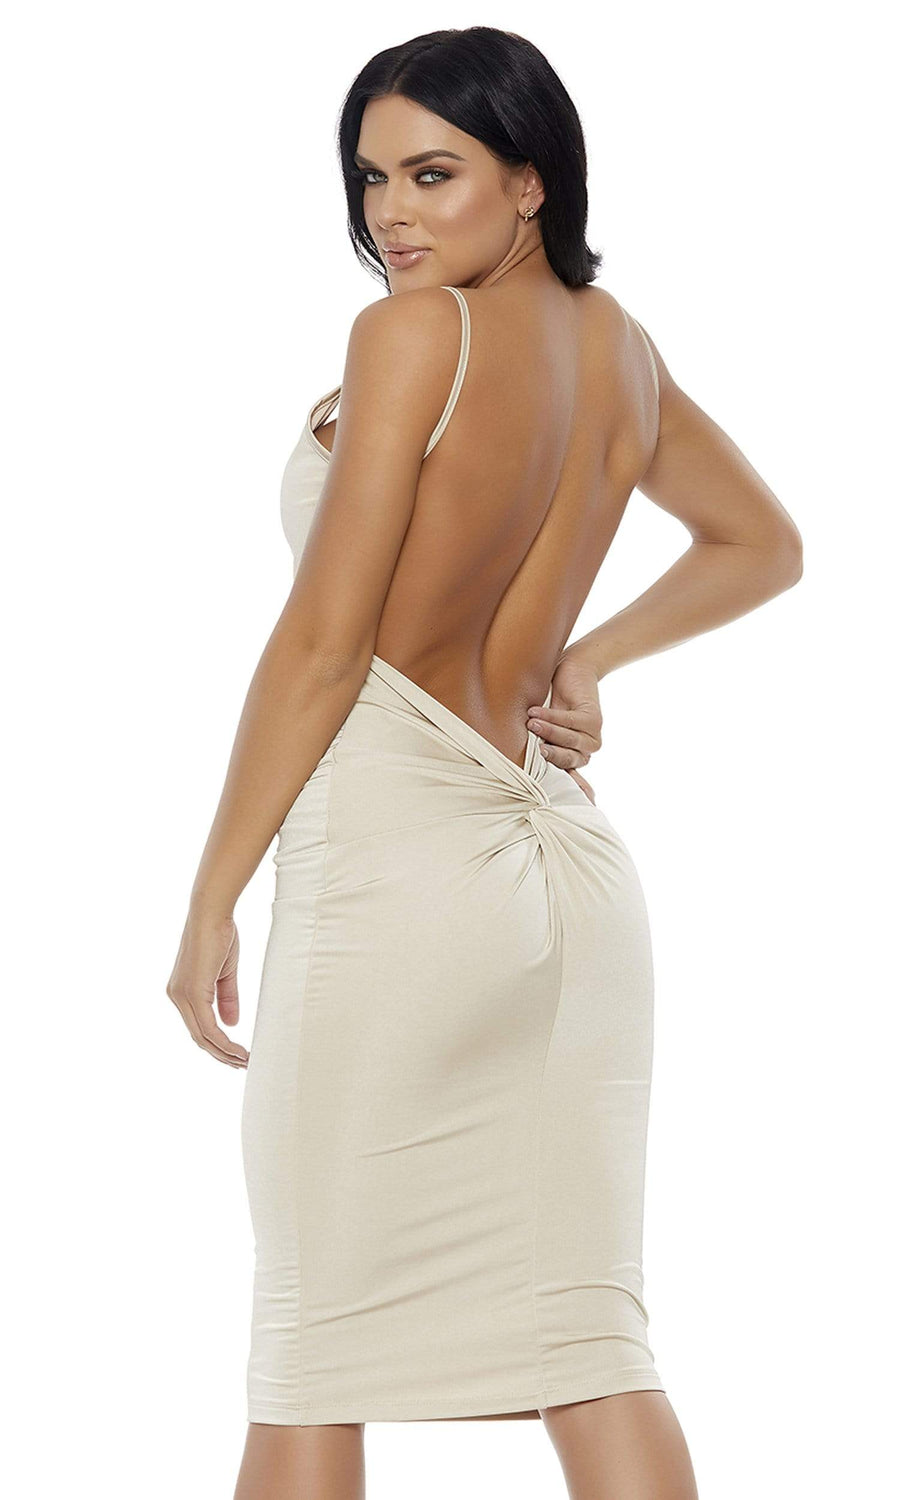 Forplay Medium / Nude Nude Knot Into It Midi Dress SHC-886800-M-FP Apparel & Accessories > Clothing > Dresses